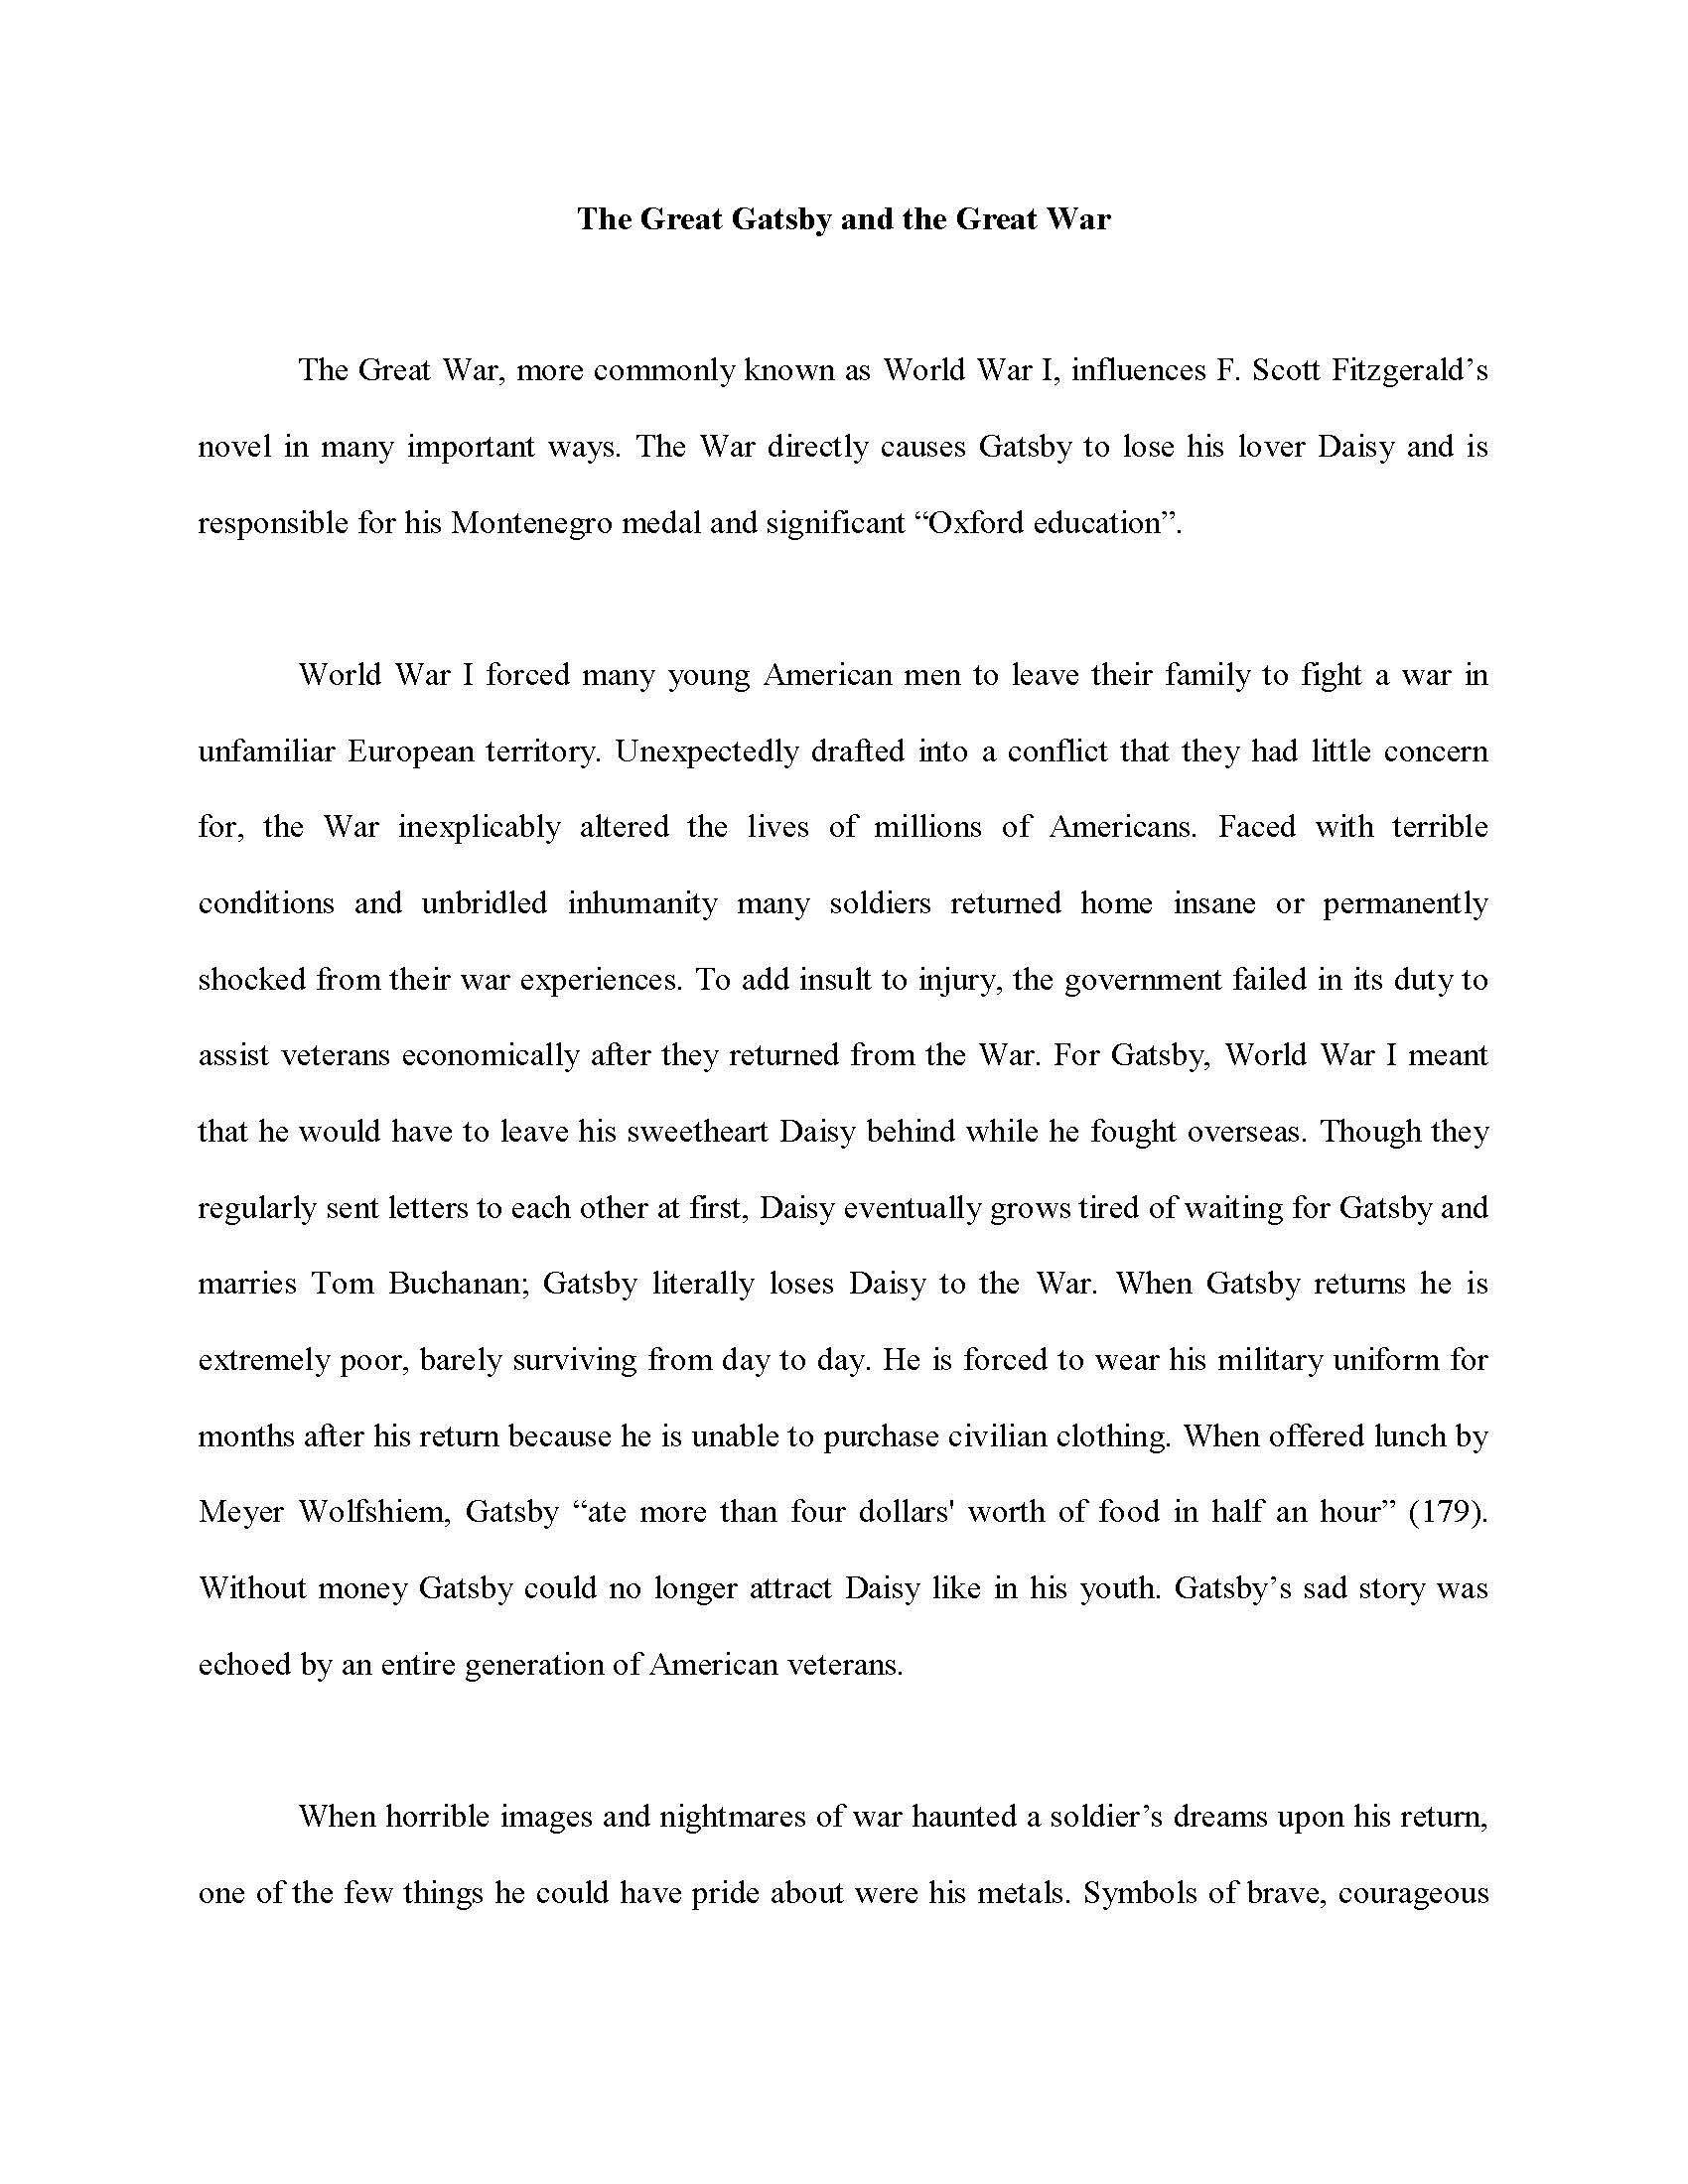 10 Awesome High School Research Paper Ideas descriptive essay topic ideas descriptive essay topics for college 2020